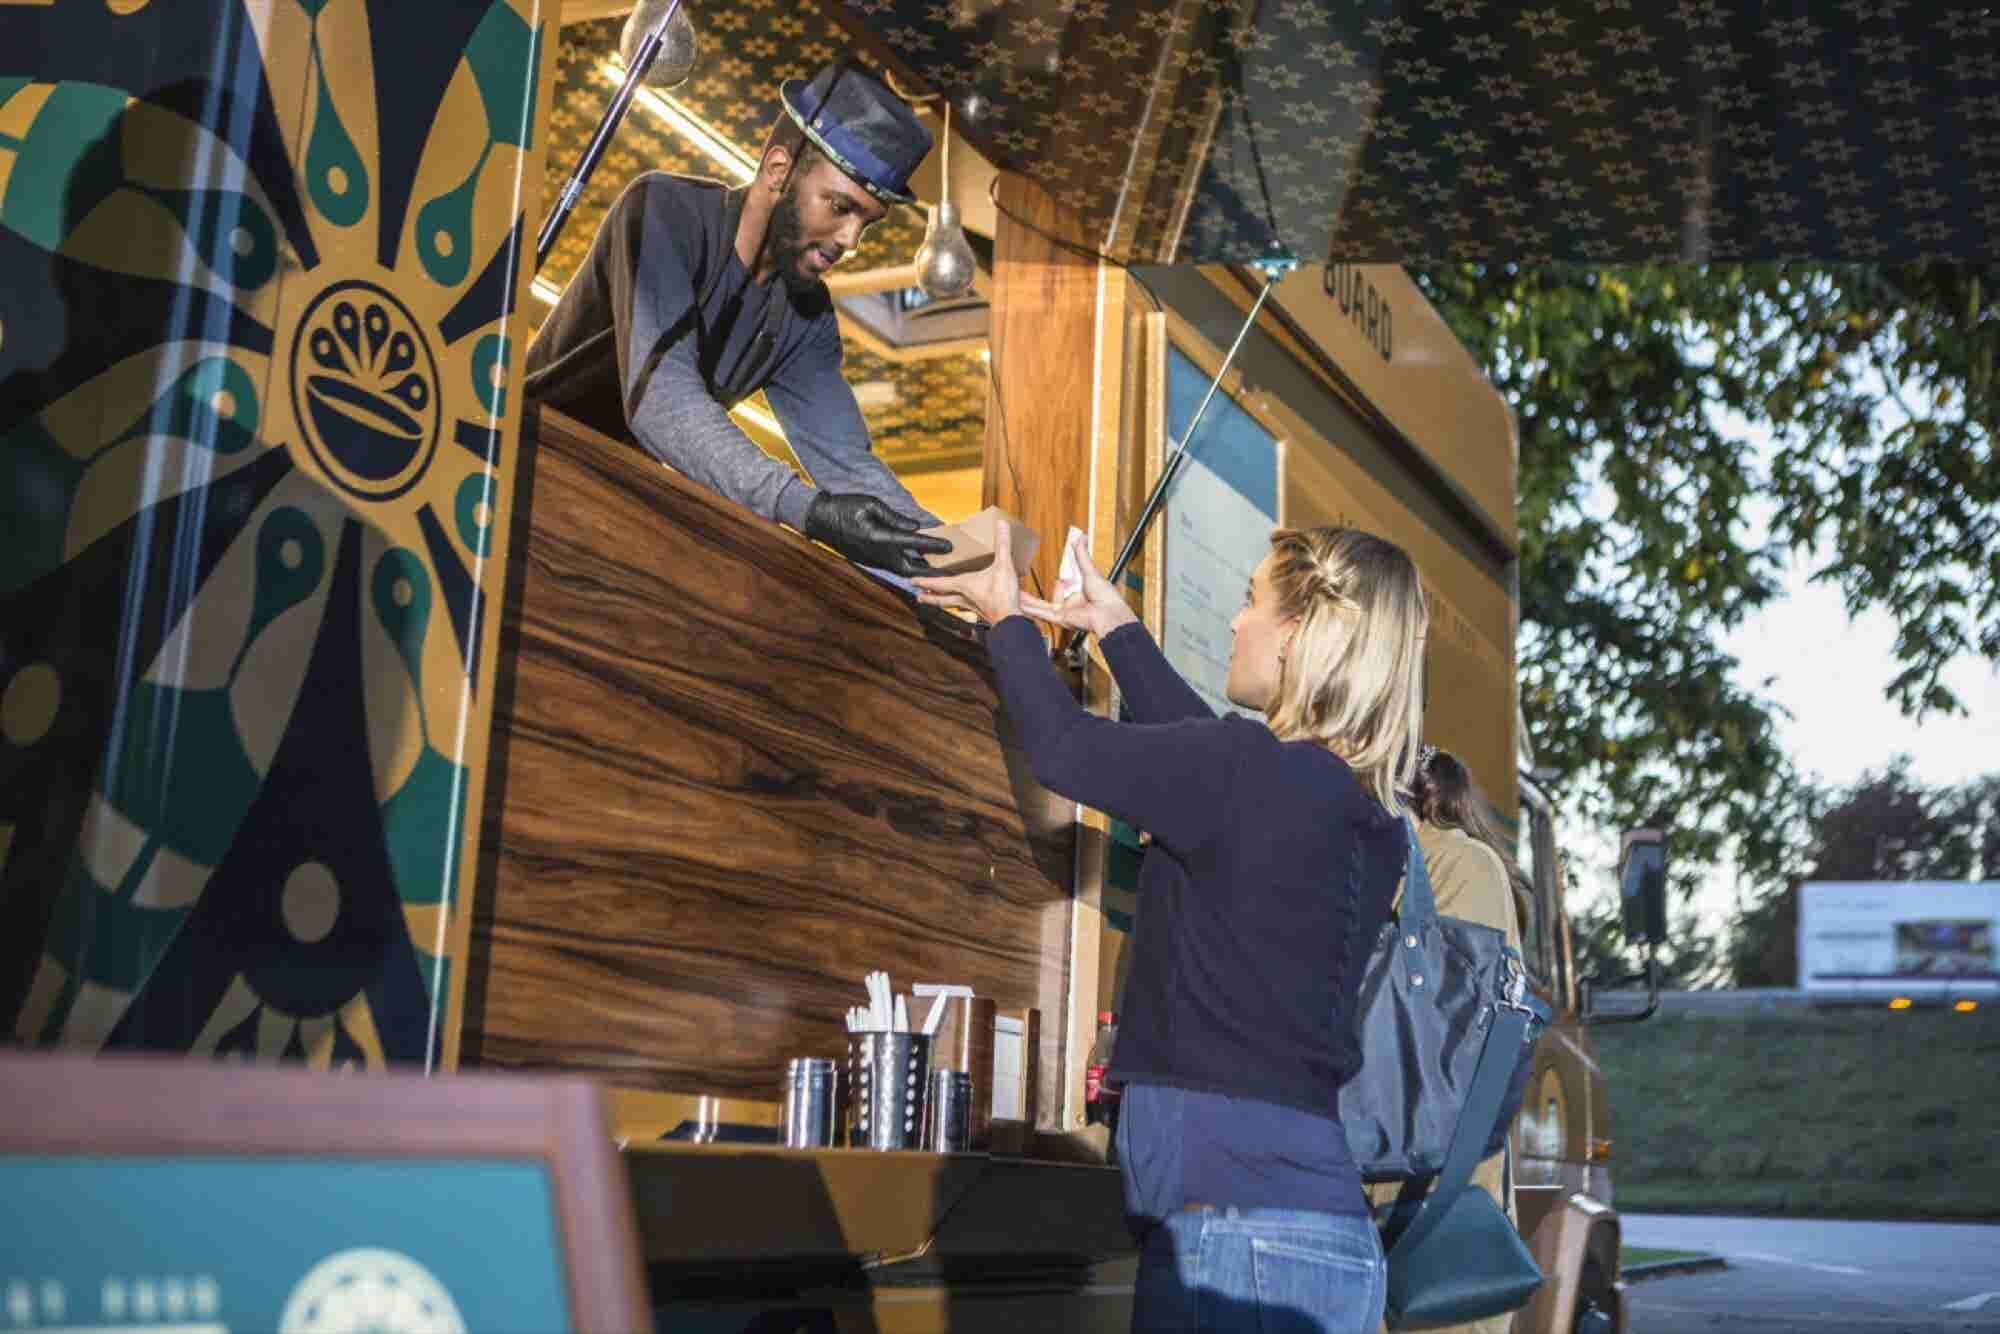 Why Food Truck Businesses Are Revving Up (Infographic)